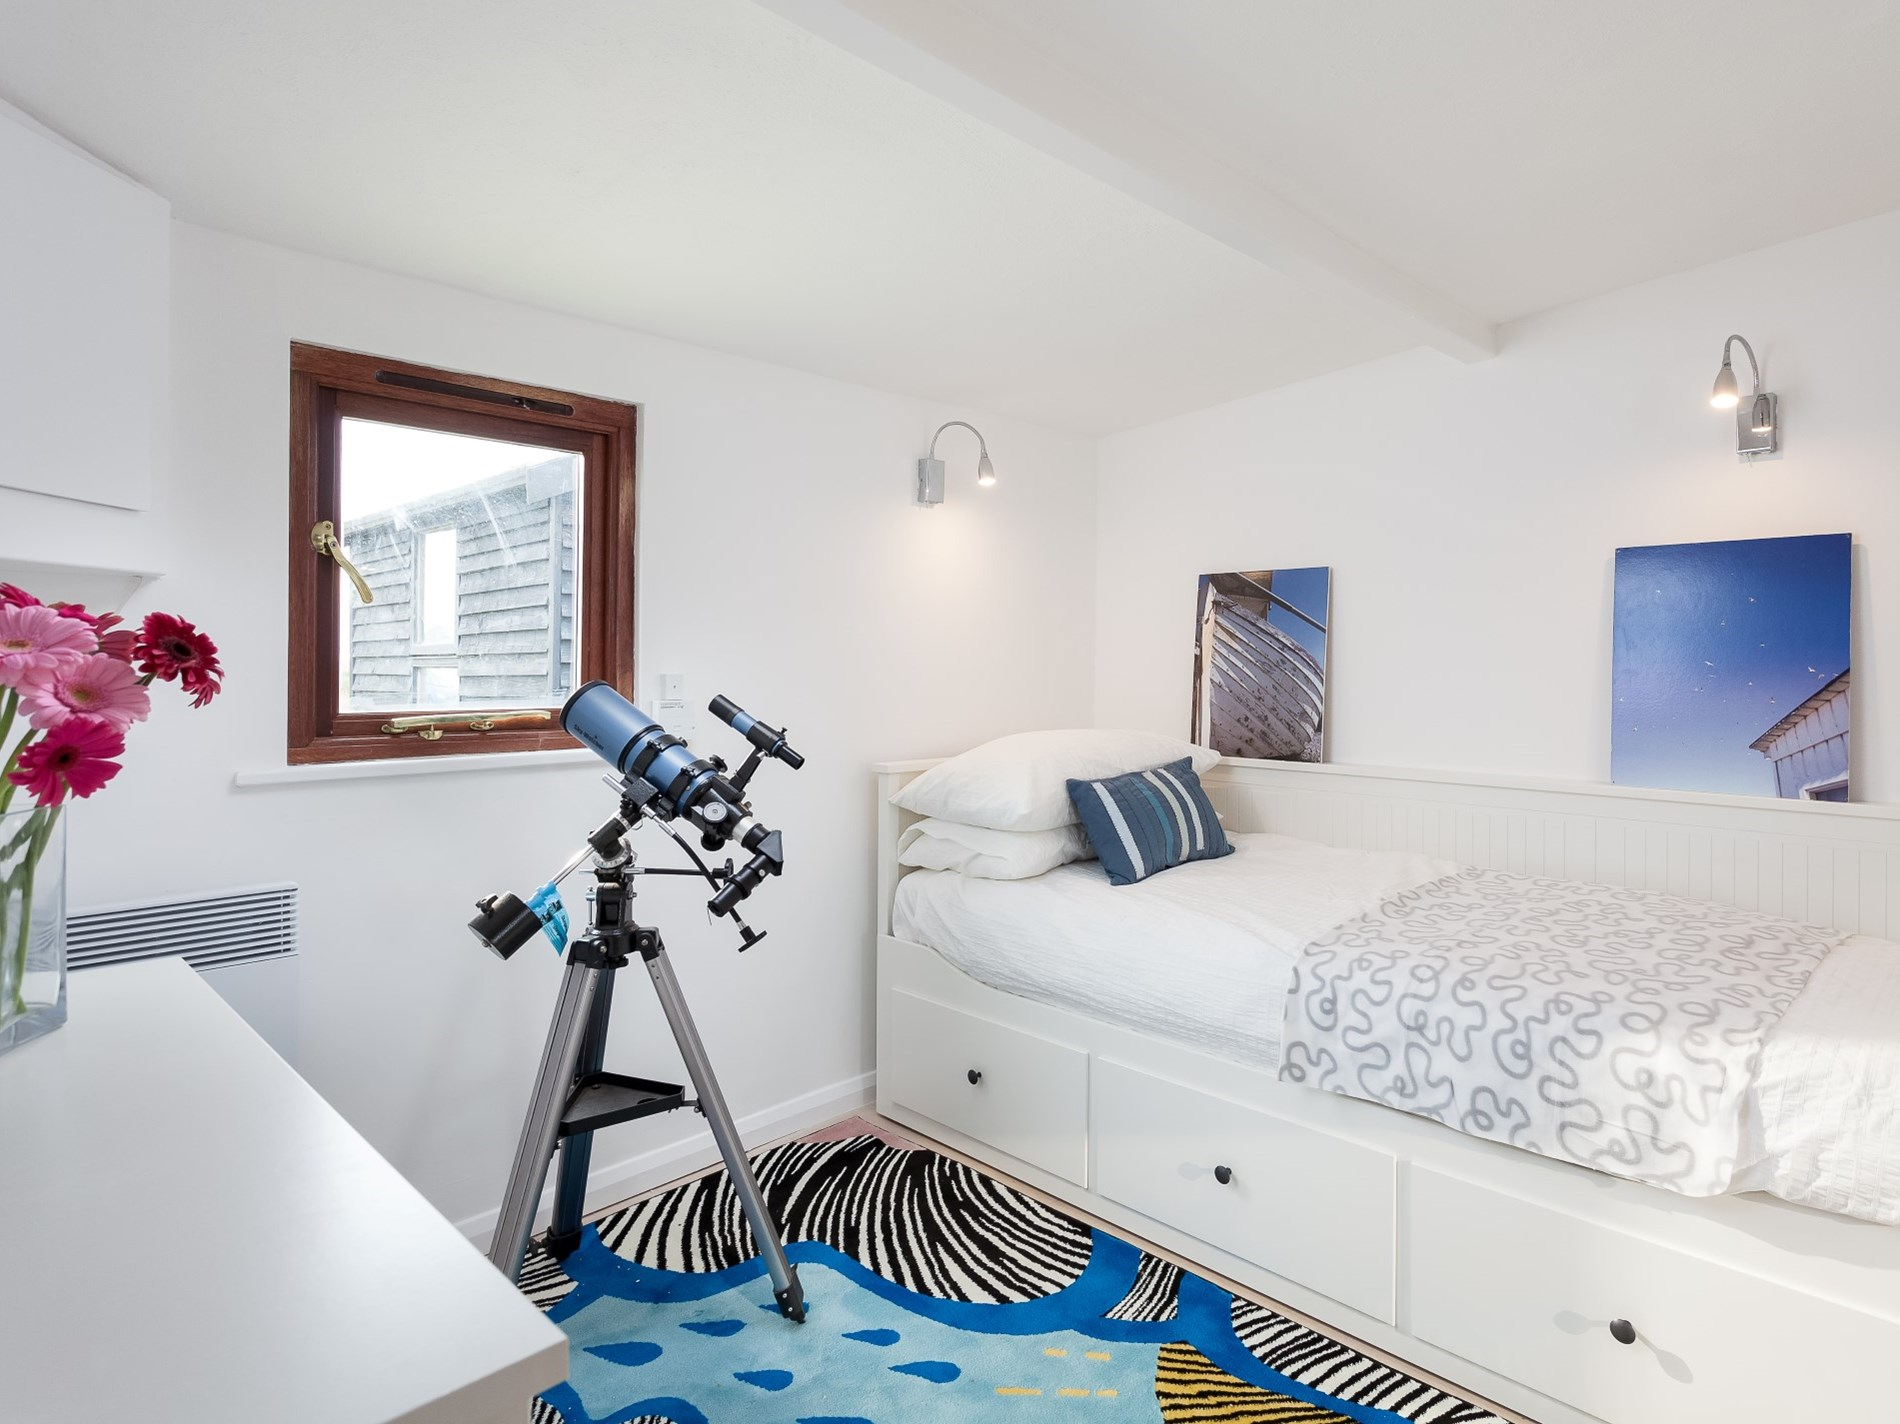 Single bedroom that can be converted into a double